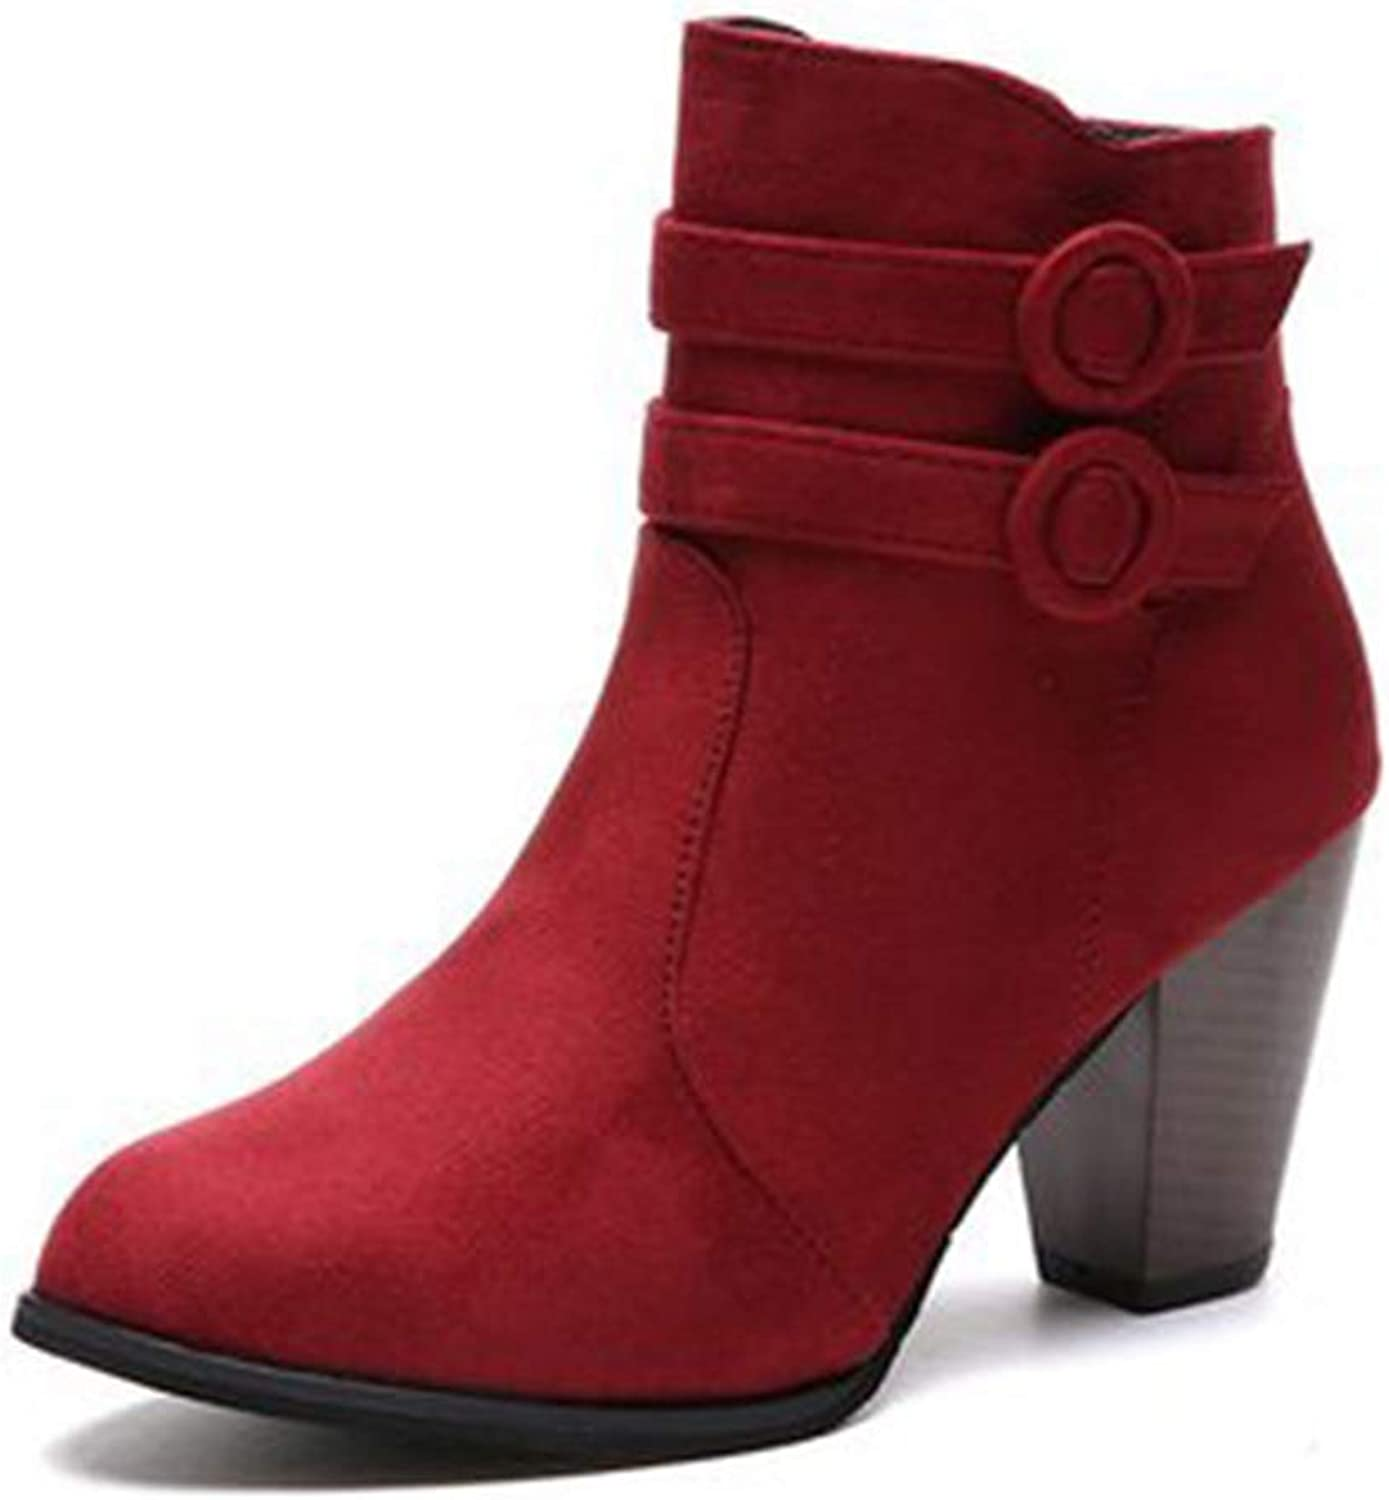 GIY Women's Round Toe Buckle Chunky Stacked Heel Ankle Boots Suede Platform Zip Bootie Martin Short Boots